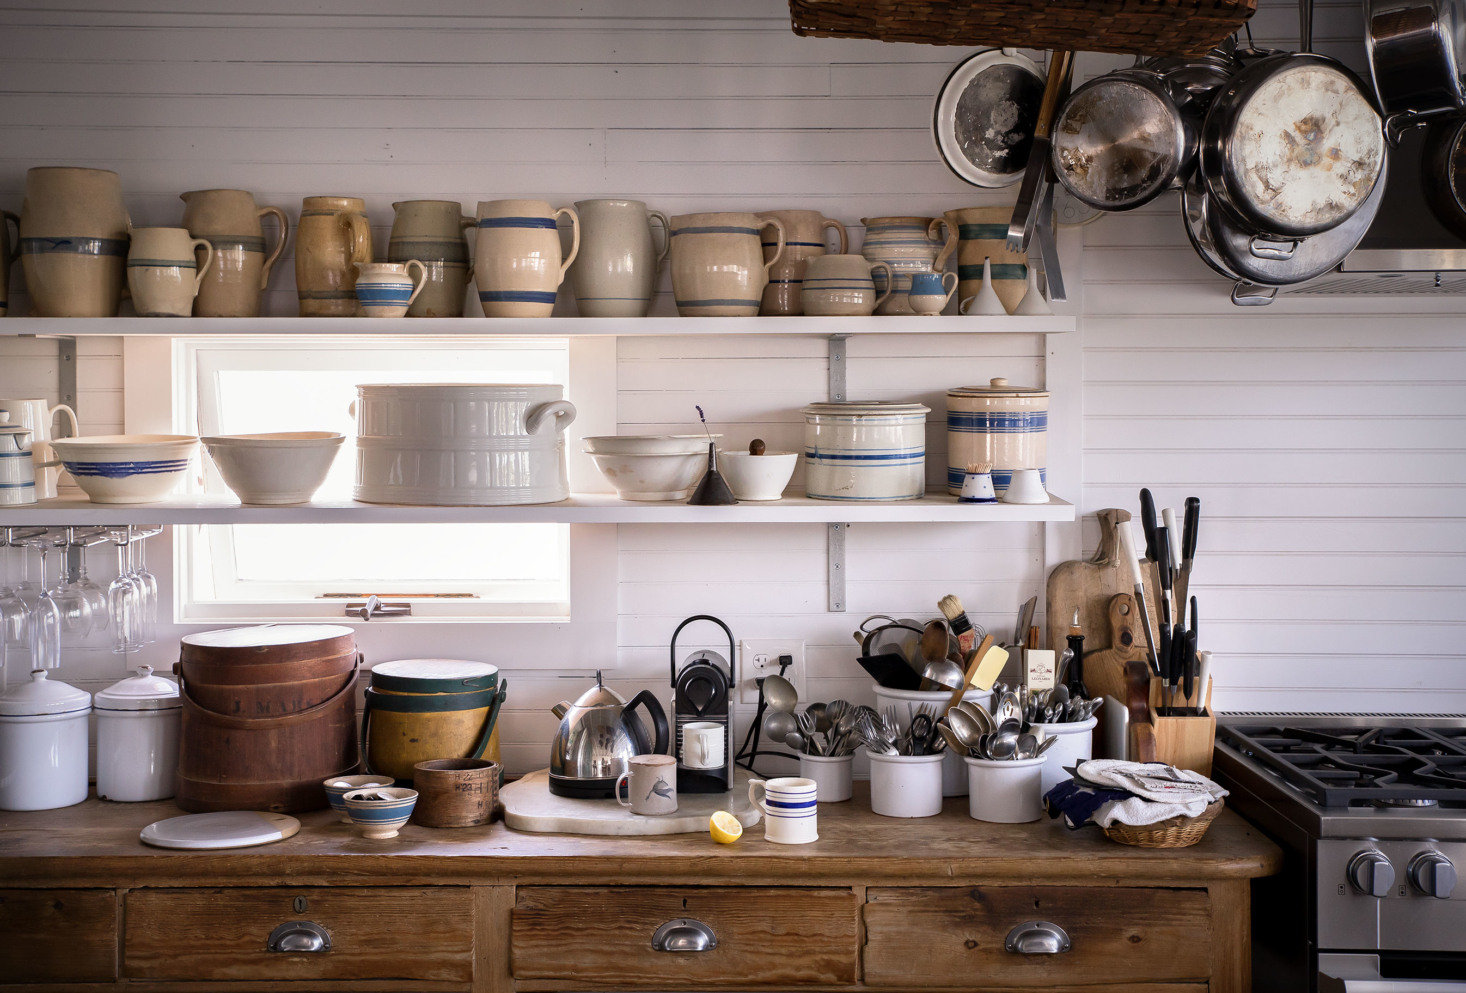 marston-house-vinalhaven-kitchen-shelves-1466x993.jpg